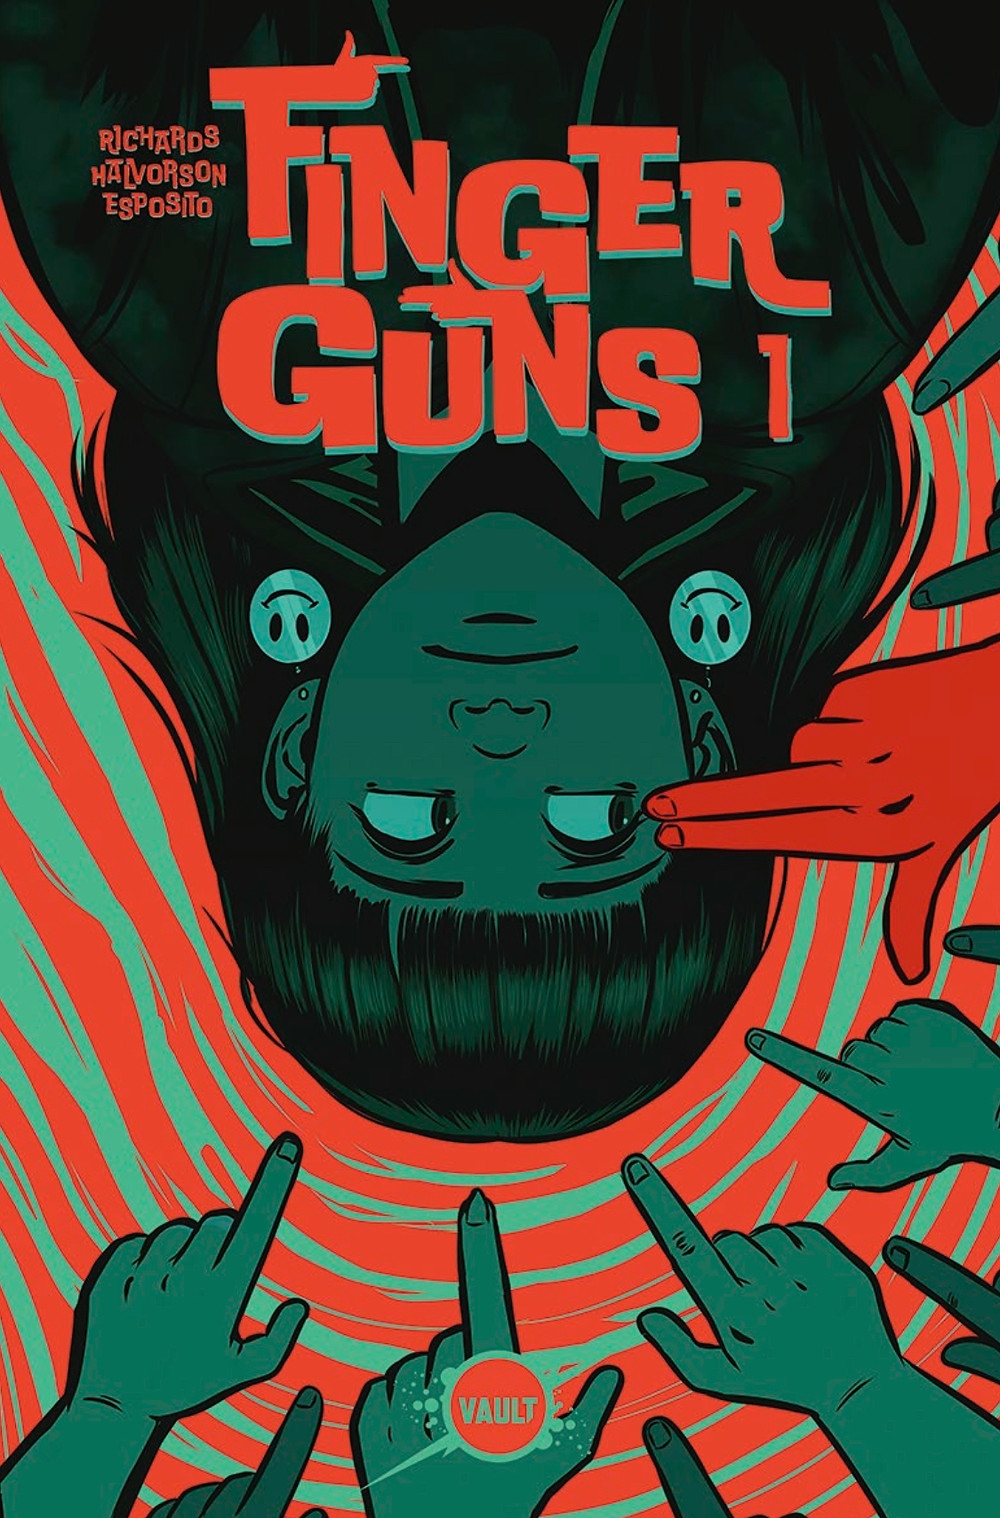 Finger Guns, issue #1, cover, Vault Comics, Val Halvorson and Rebecca Nalty